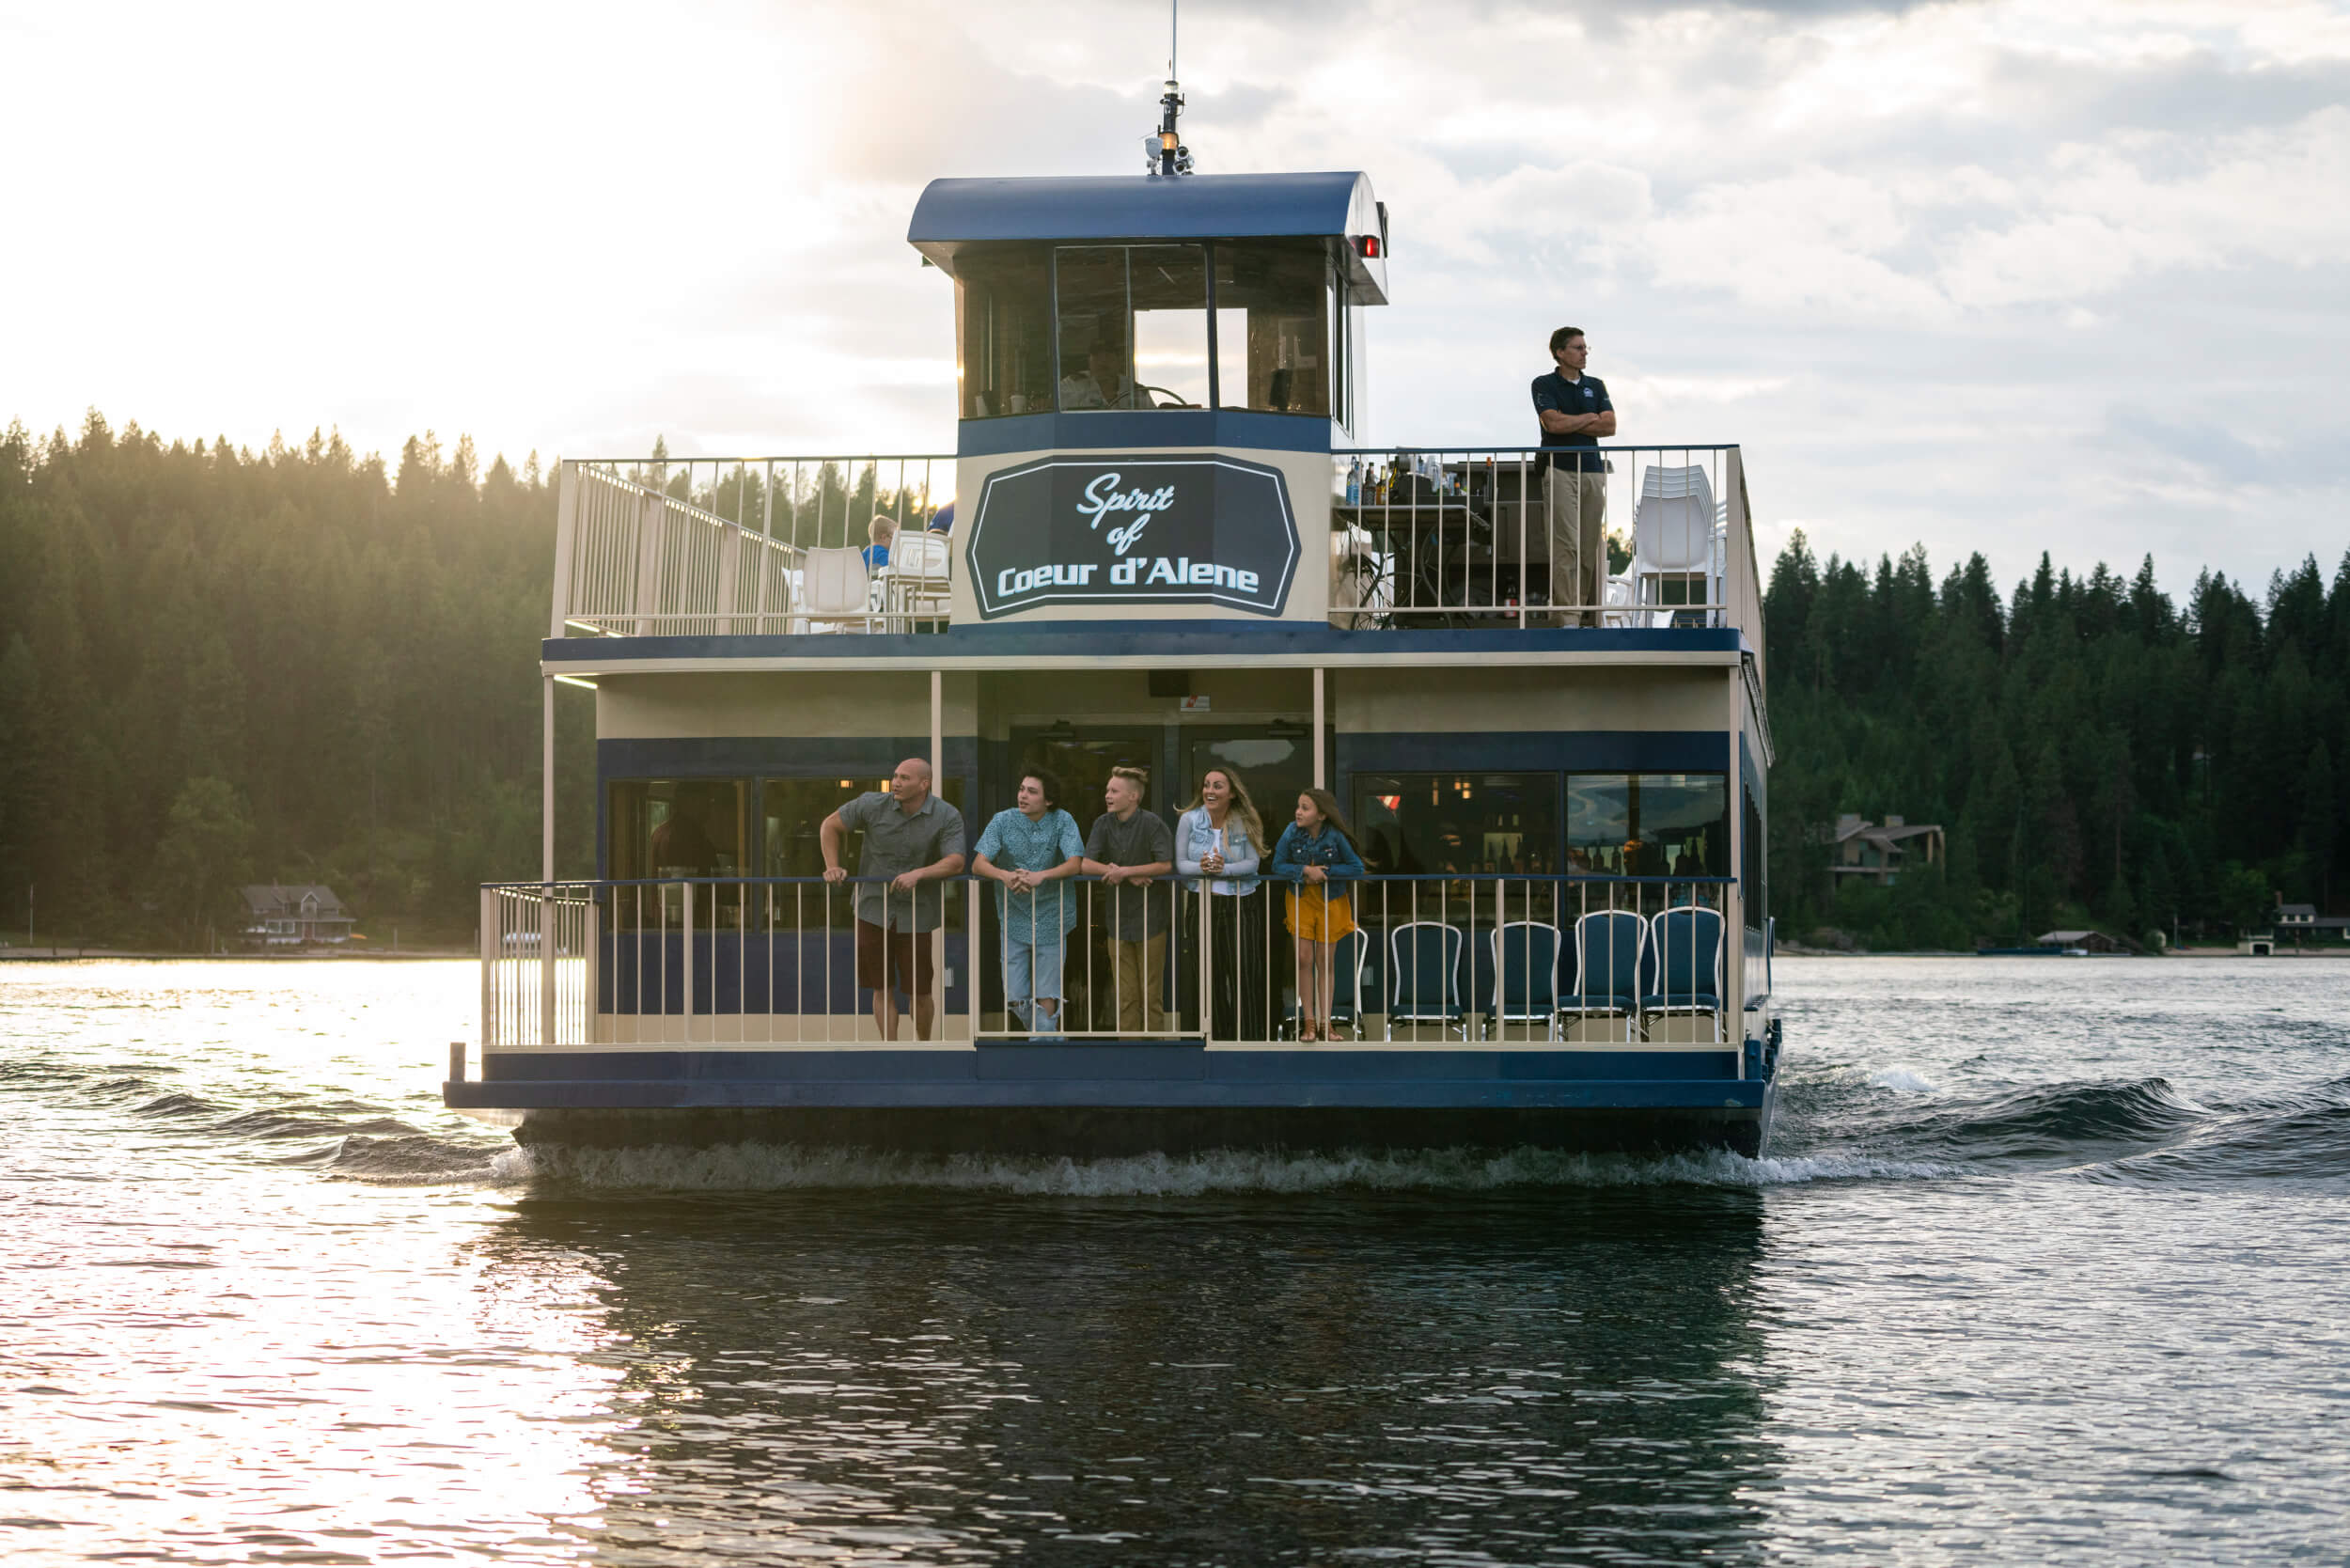 Unwind on a Lake Coeur d'Alene Cruise. Photo Credit: Idaho Tourism.